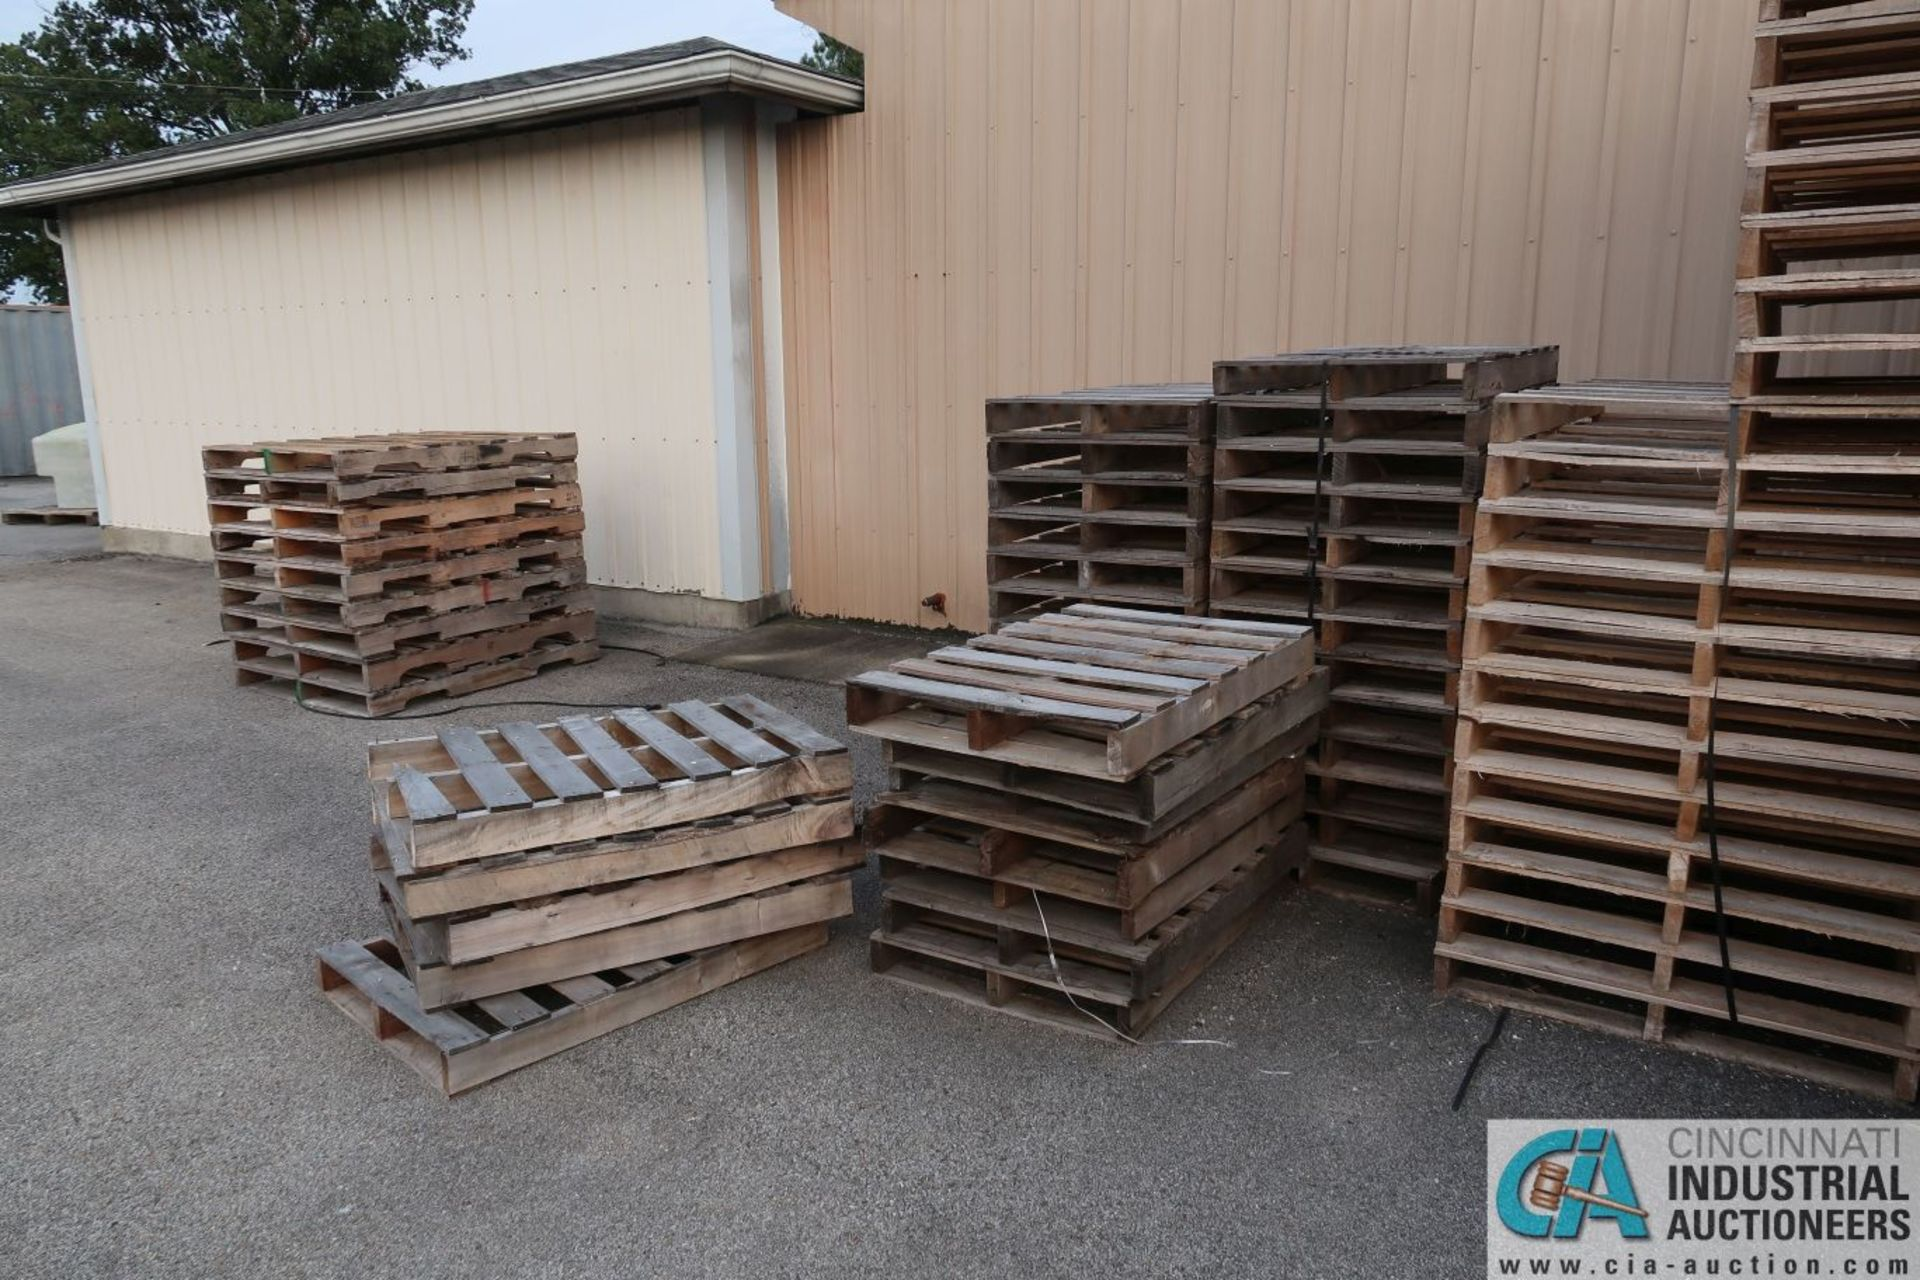 APPROX. VARIOUS SIZE NEW WOOD PALLETS - Image 2 of 5